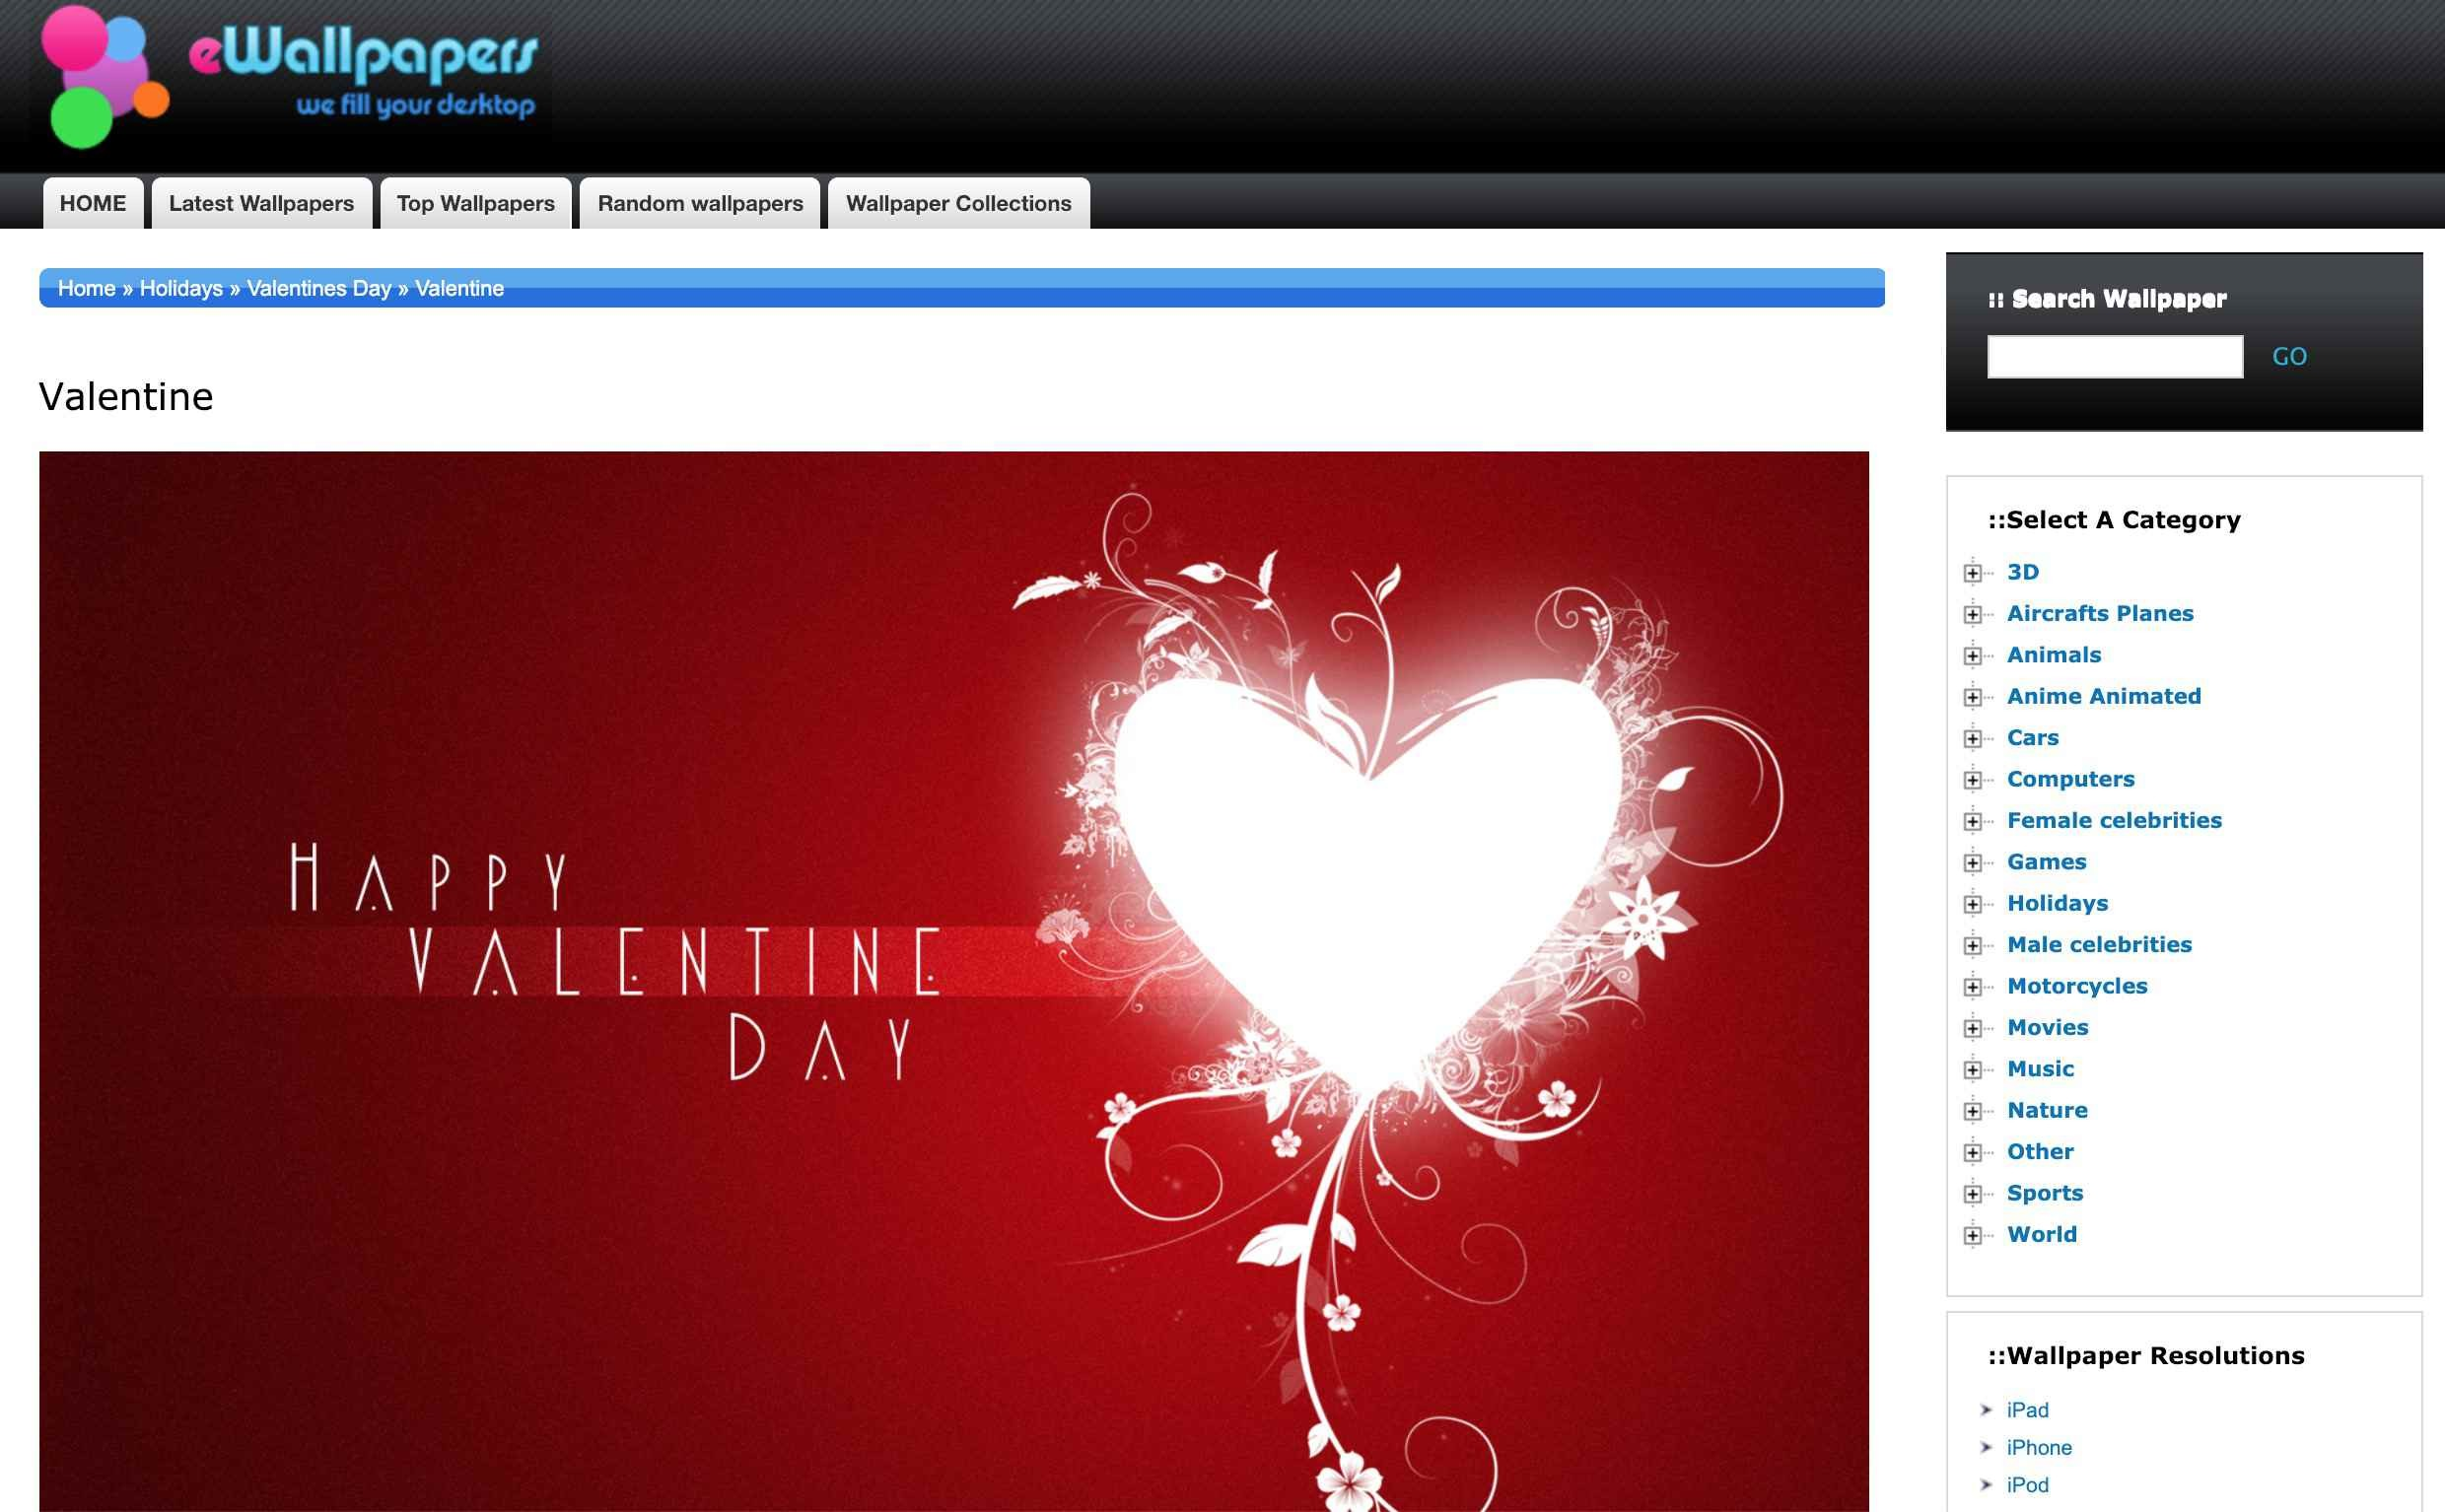 2480x1534 Happy Valentine's Day by eWallpapers